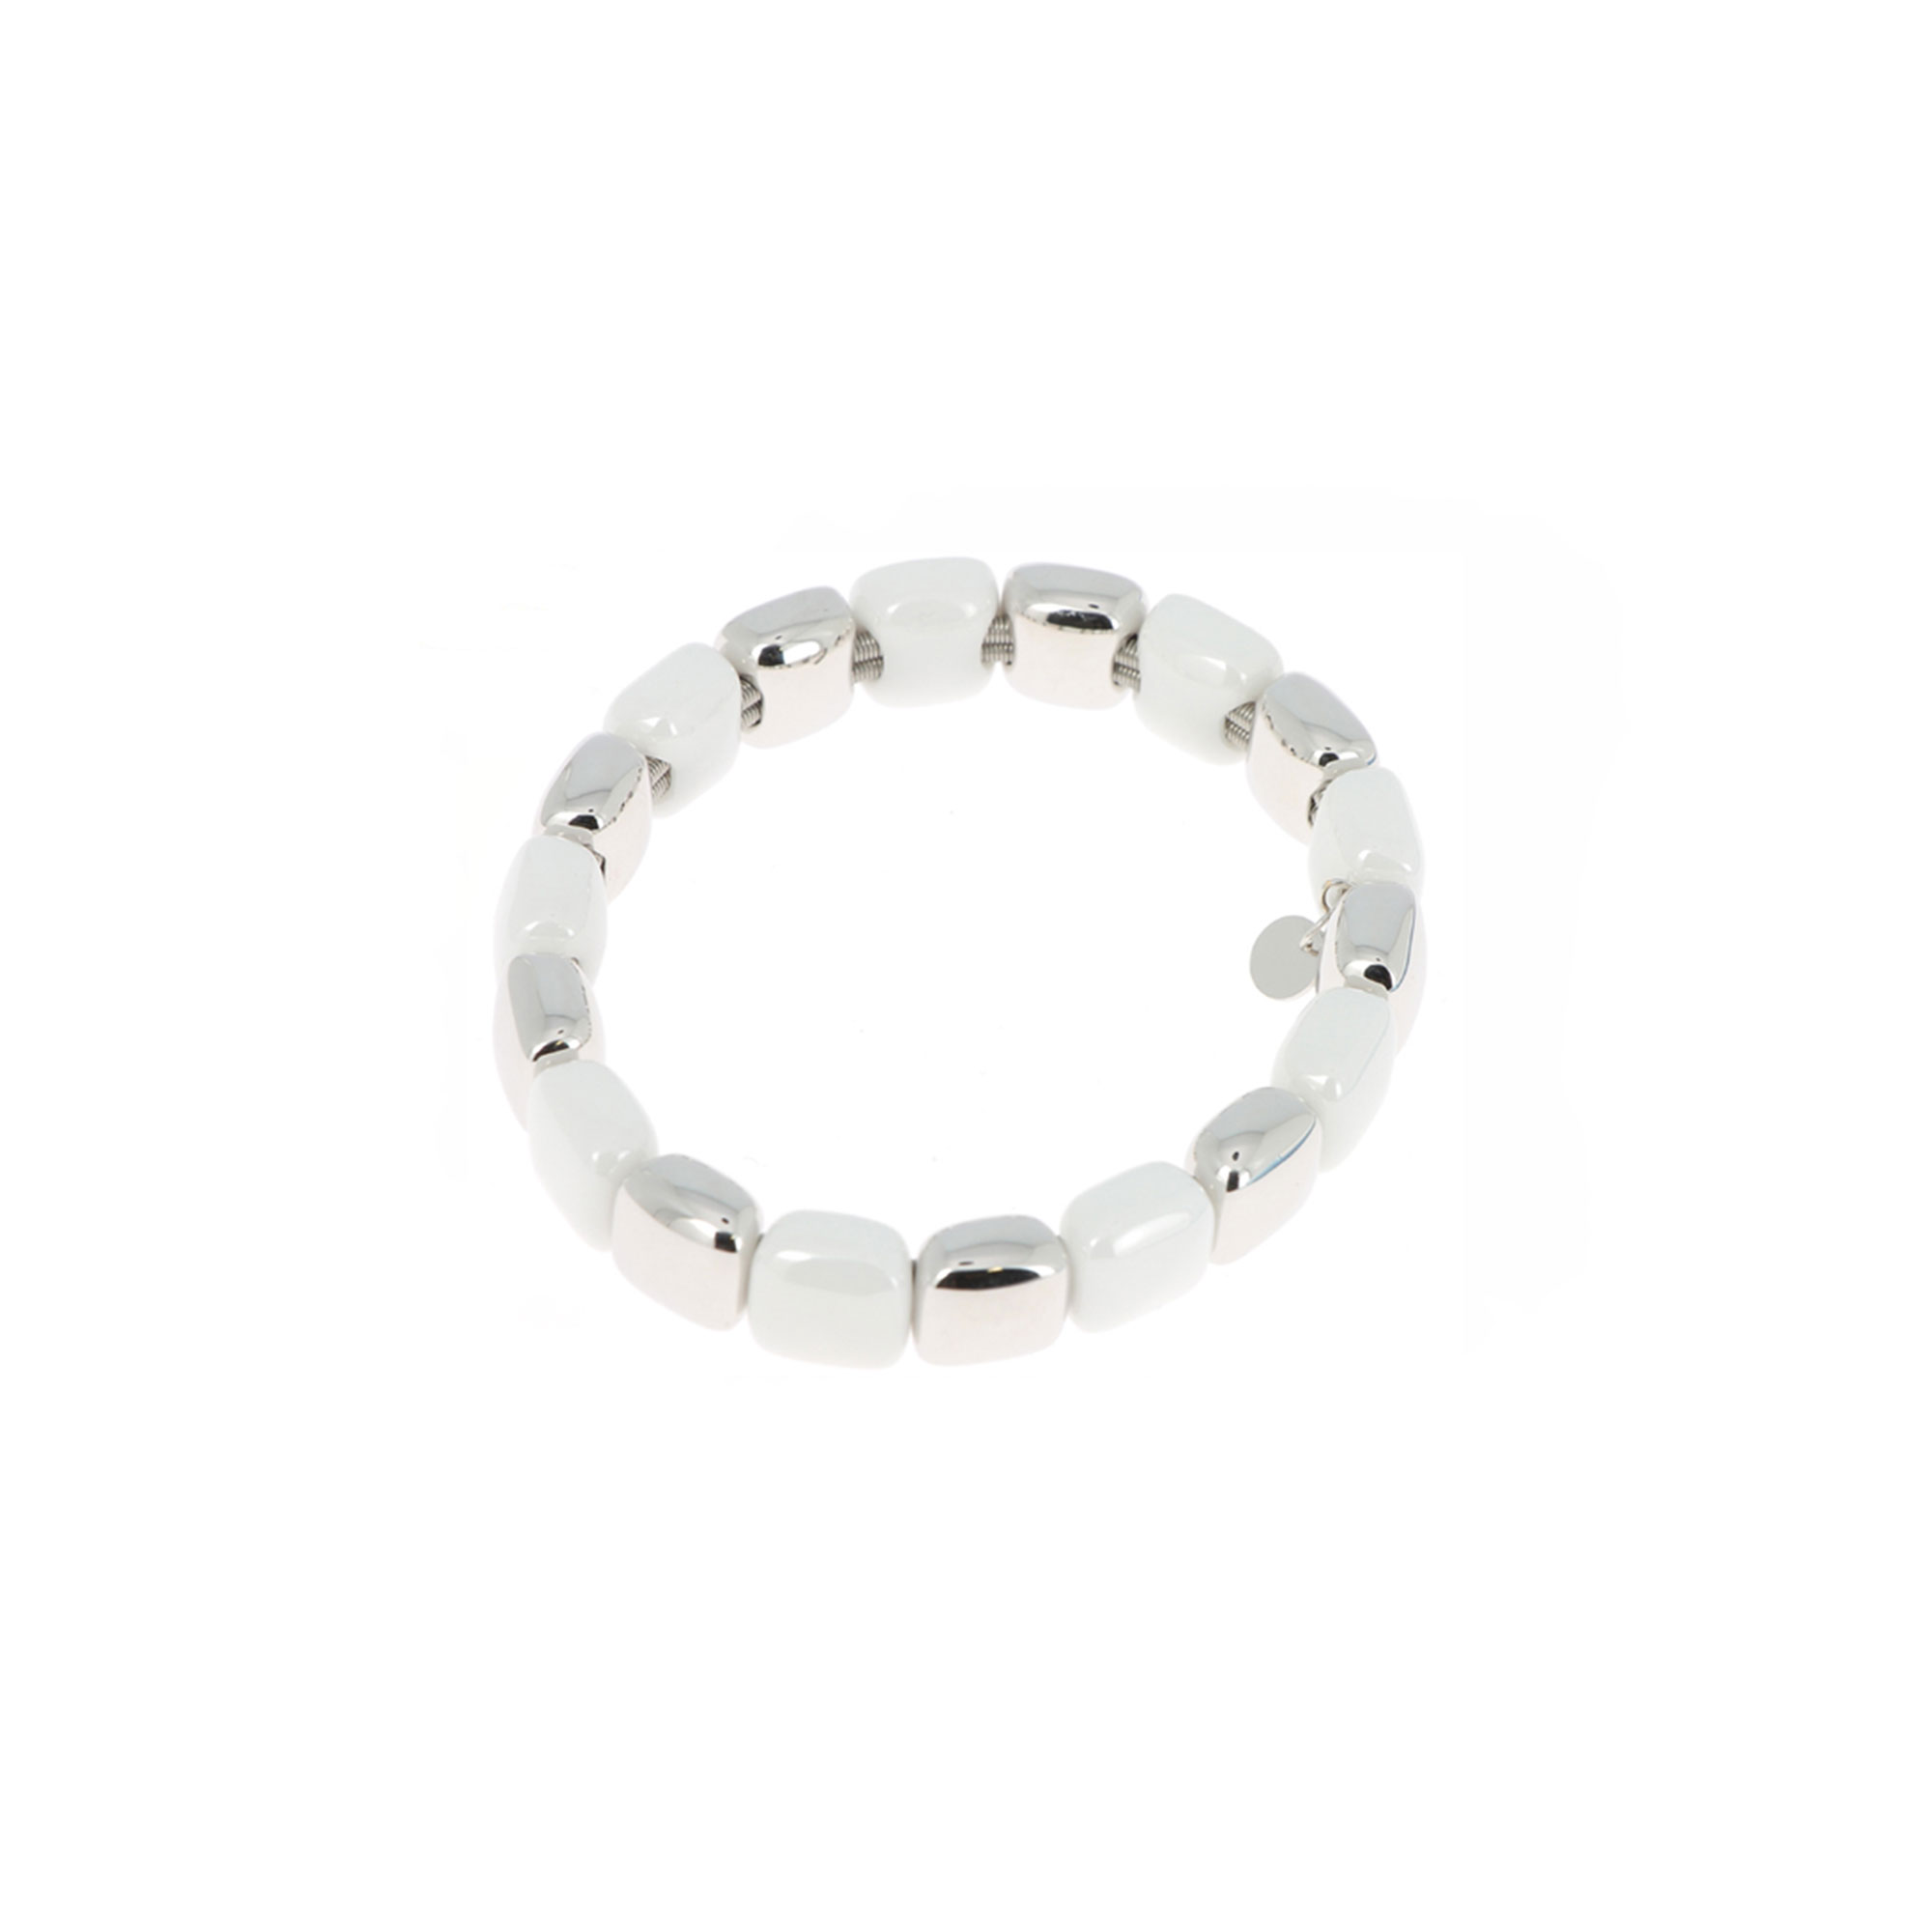 Pesavento  Rhodium Plated Sterling Silver    Silver Bracelets WLUXB005